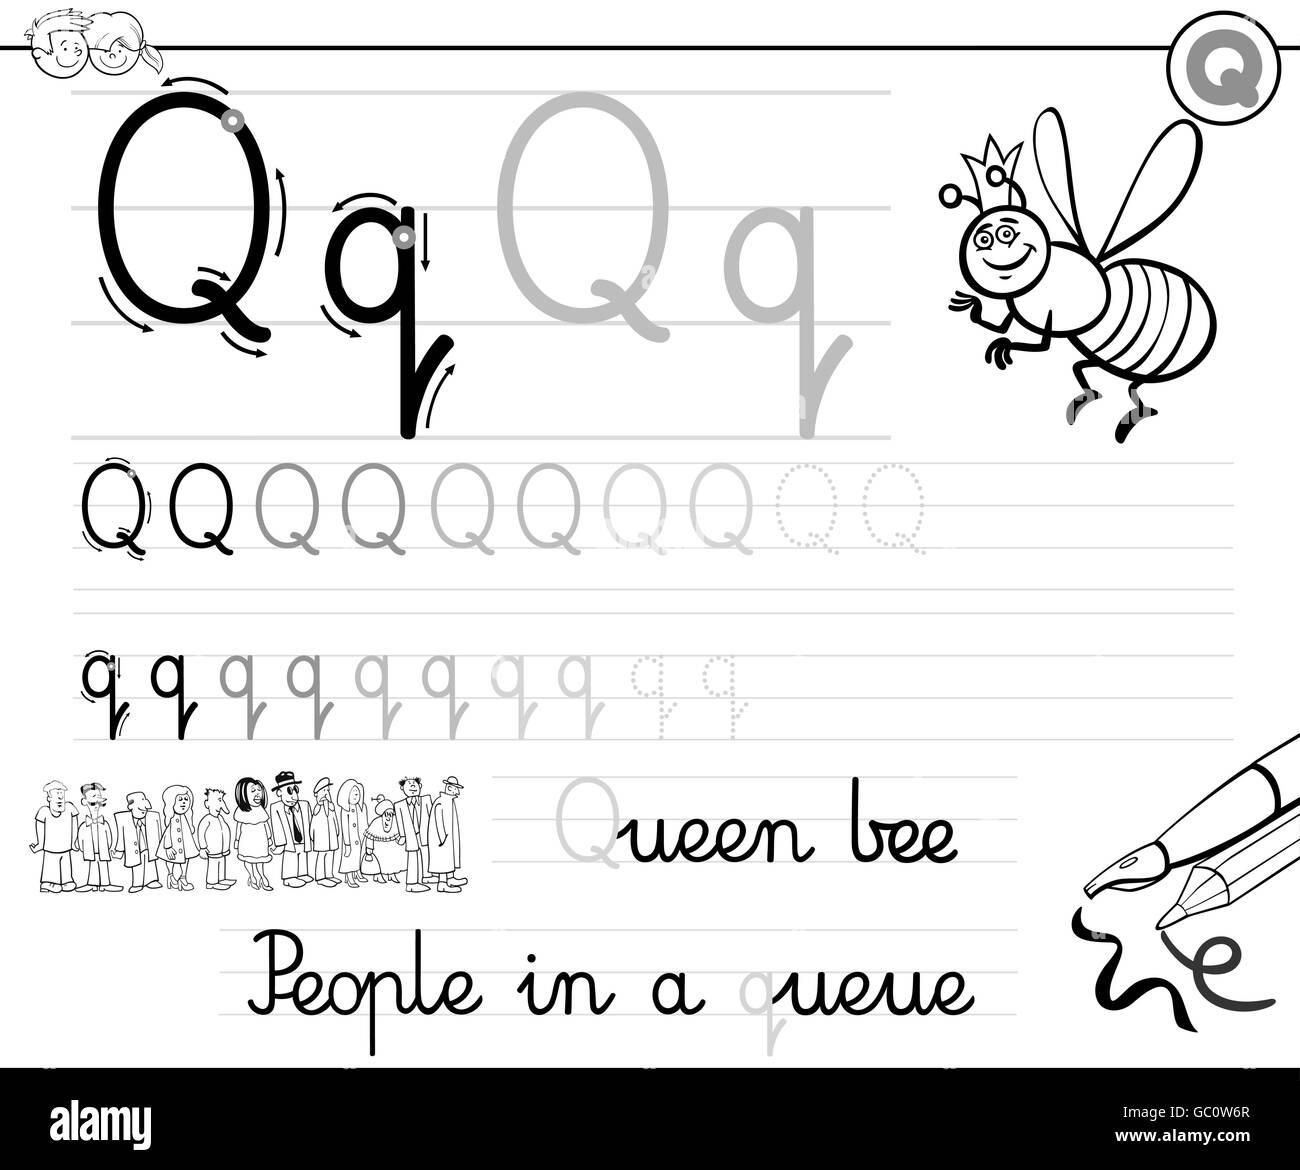 Black and White Cartoon Illustration of Writing Skills Practice with ...